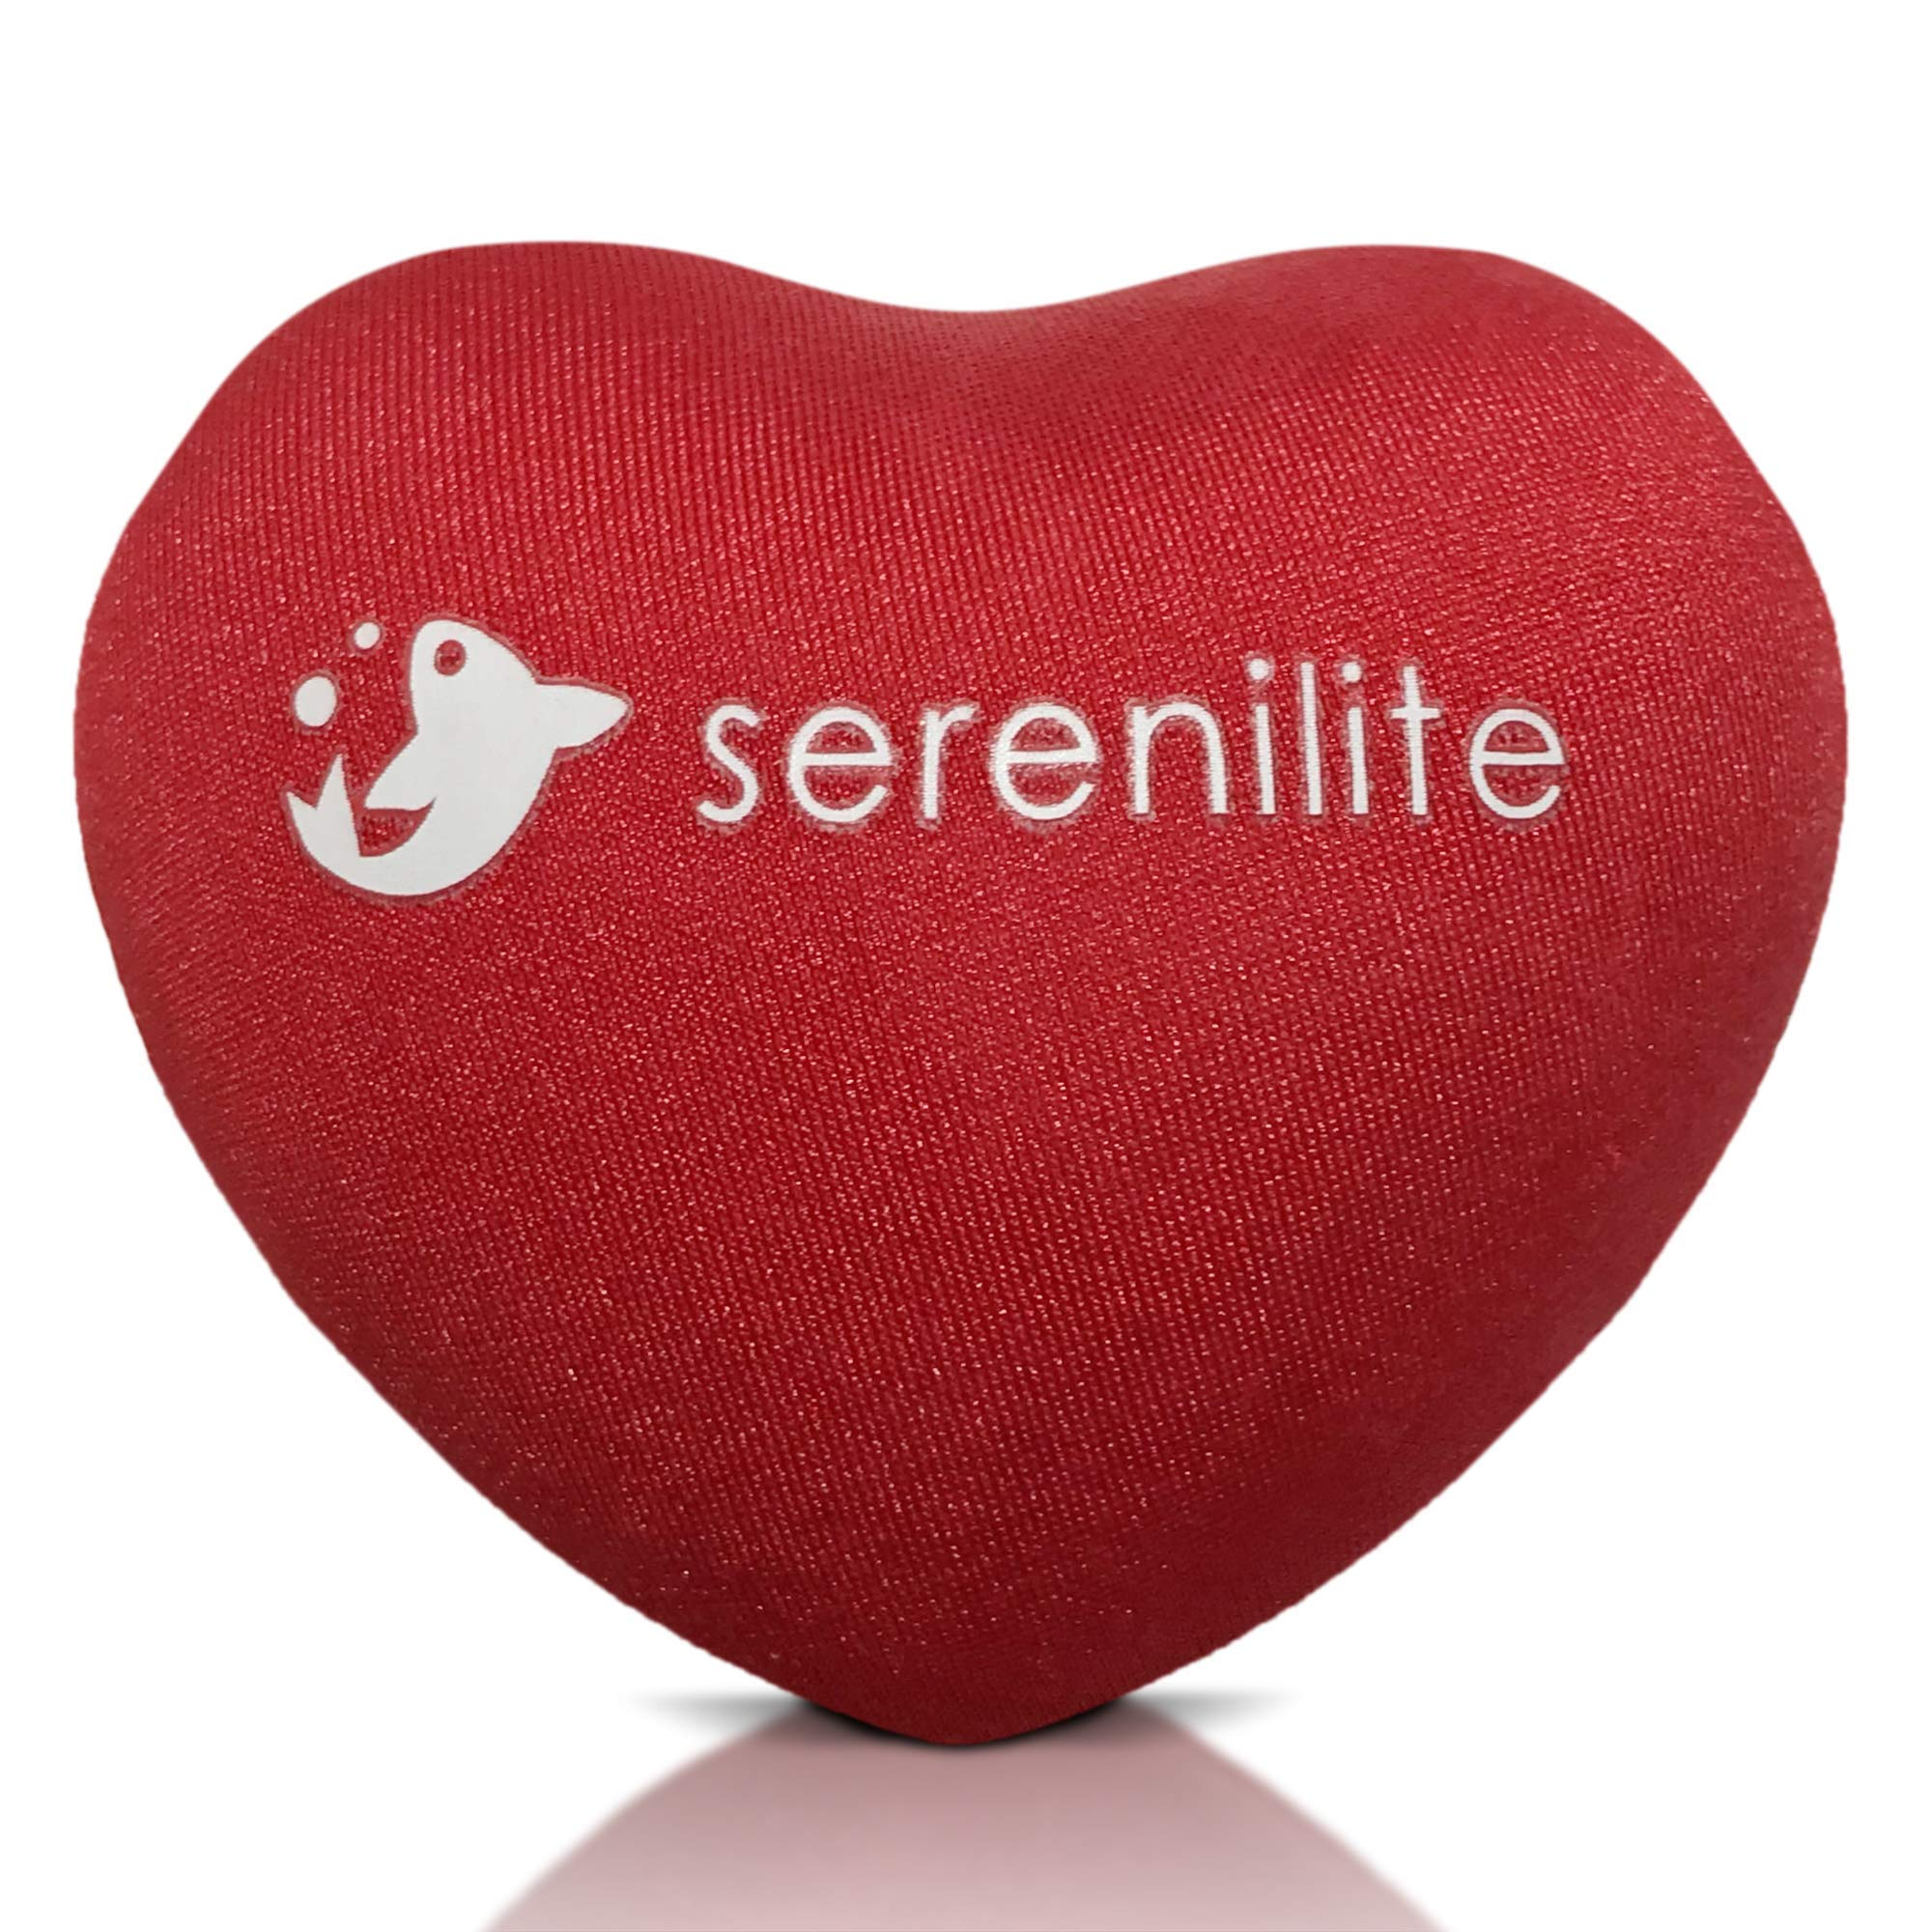 Serenilite Hand Therapy Stress Ball - Optimal Stress Relief - Great for Hand Exercises and Strengthening (red)